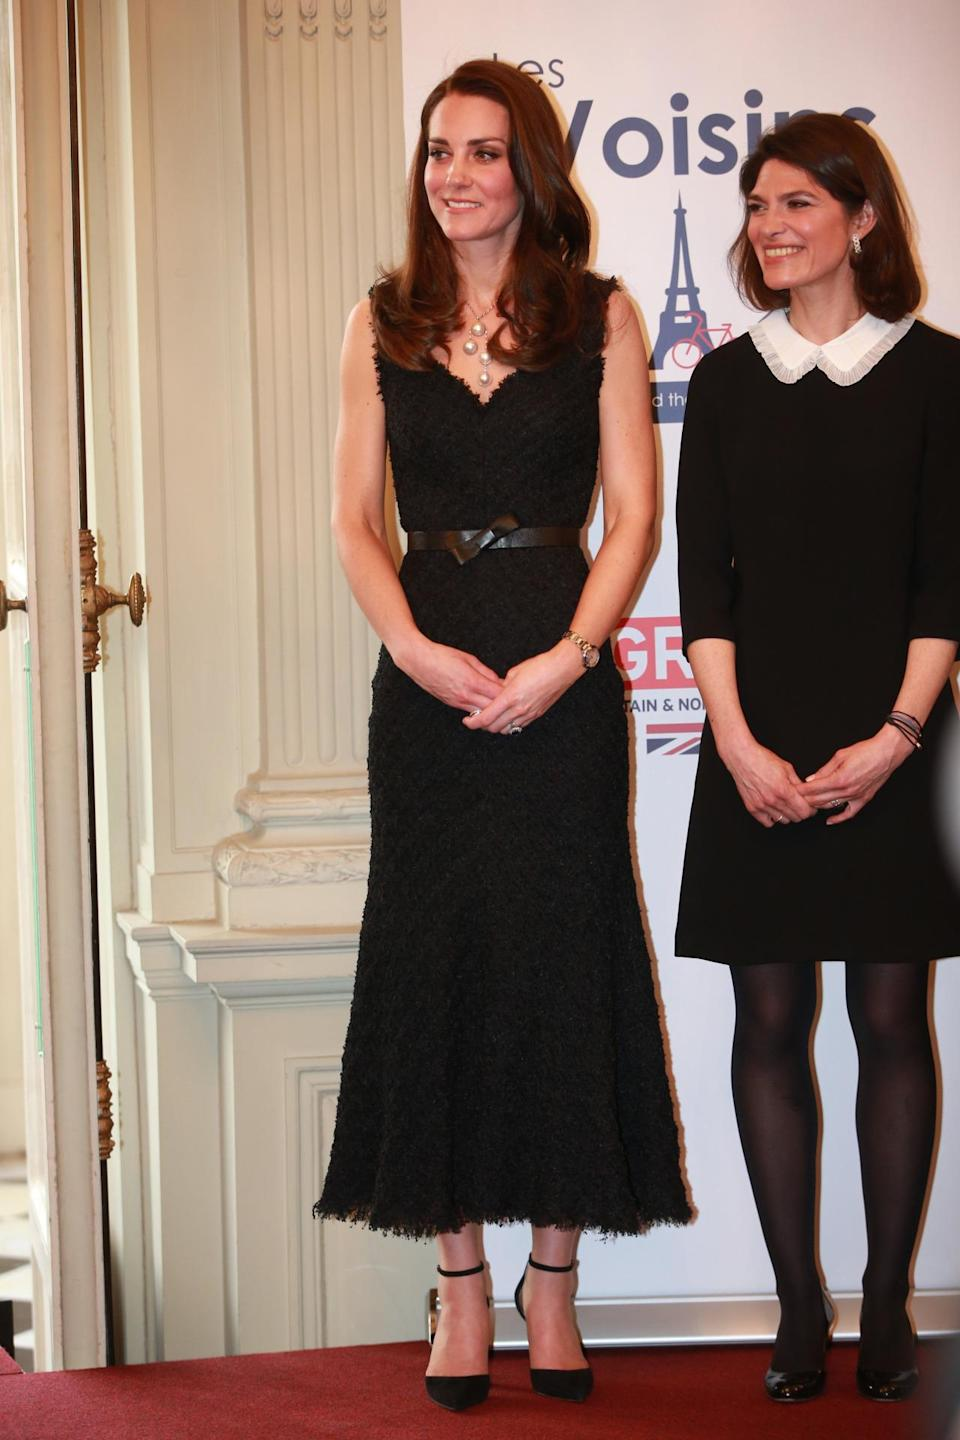 <p>For her arrival in Paris, Kate chose a textured black dress by trusted British label, Alexander McQueen. It was one of the few sleeveless designs the Duchess has donned over the years and appeared to be made from a fringed lace fabric. Kate's jewellery could not be ignored. Huge pearl Balenciaga earrings and a stand-out matching necklace added a nice touch to the elegant look which was finished off with suede Gianvito Rossi heels. </p><p><i>[Photo: PA]</i></p>